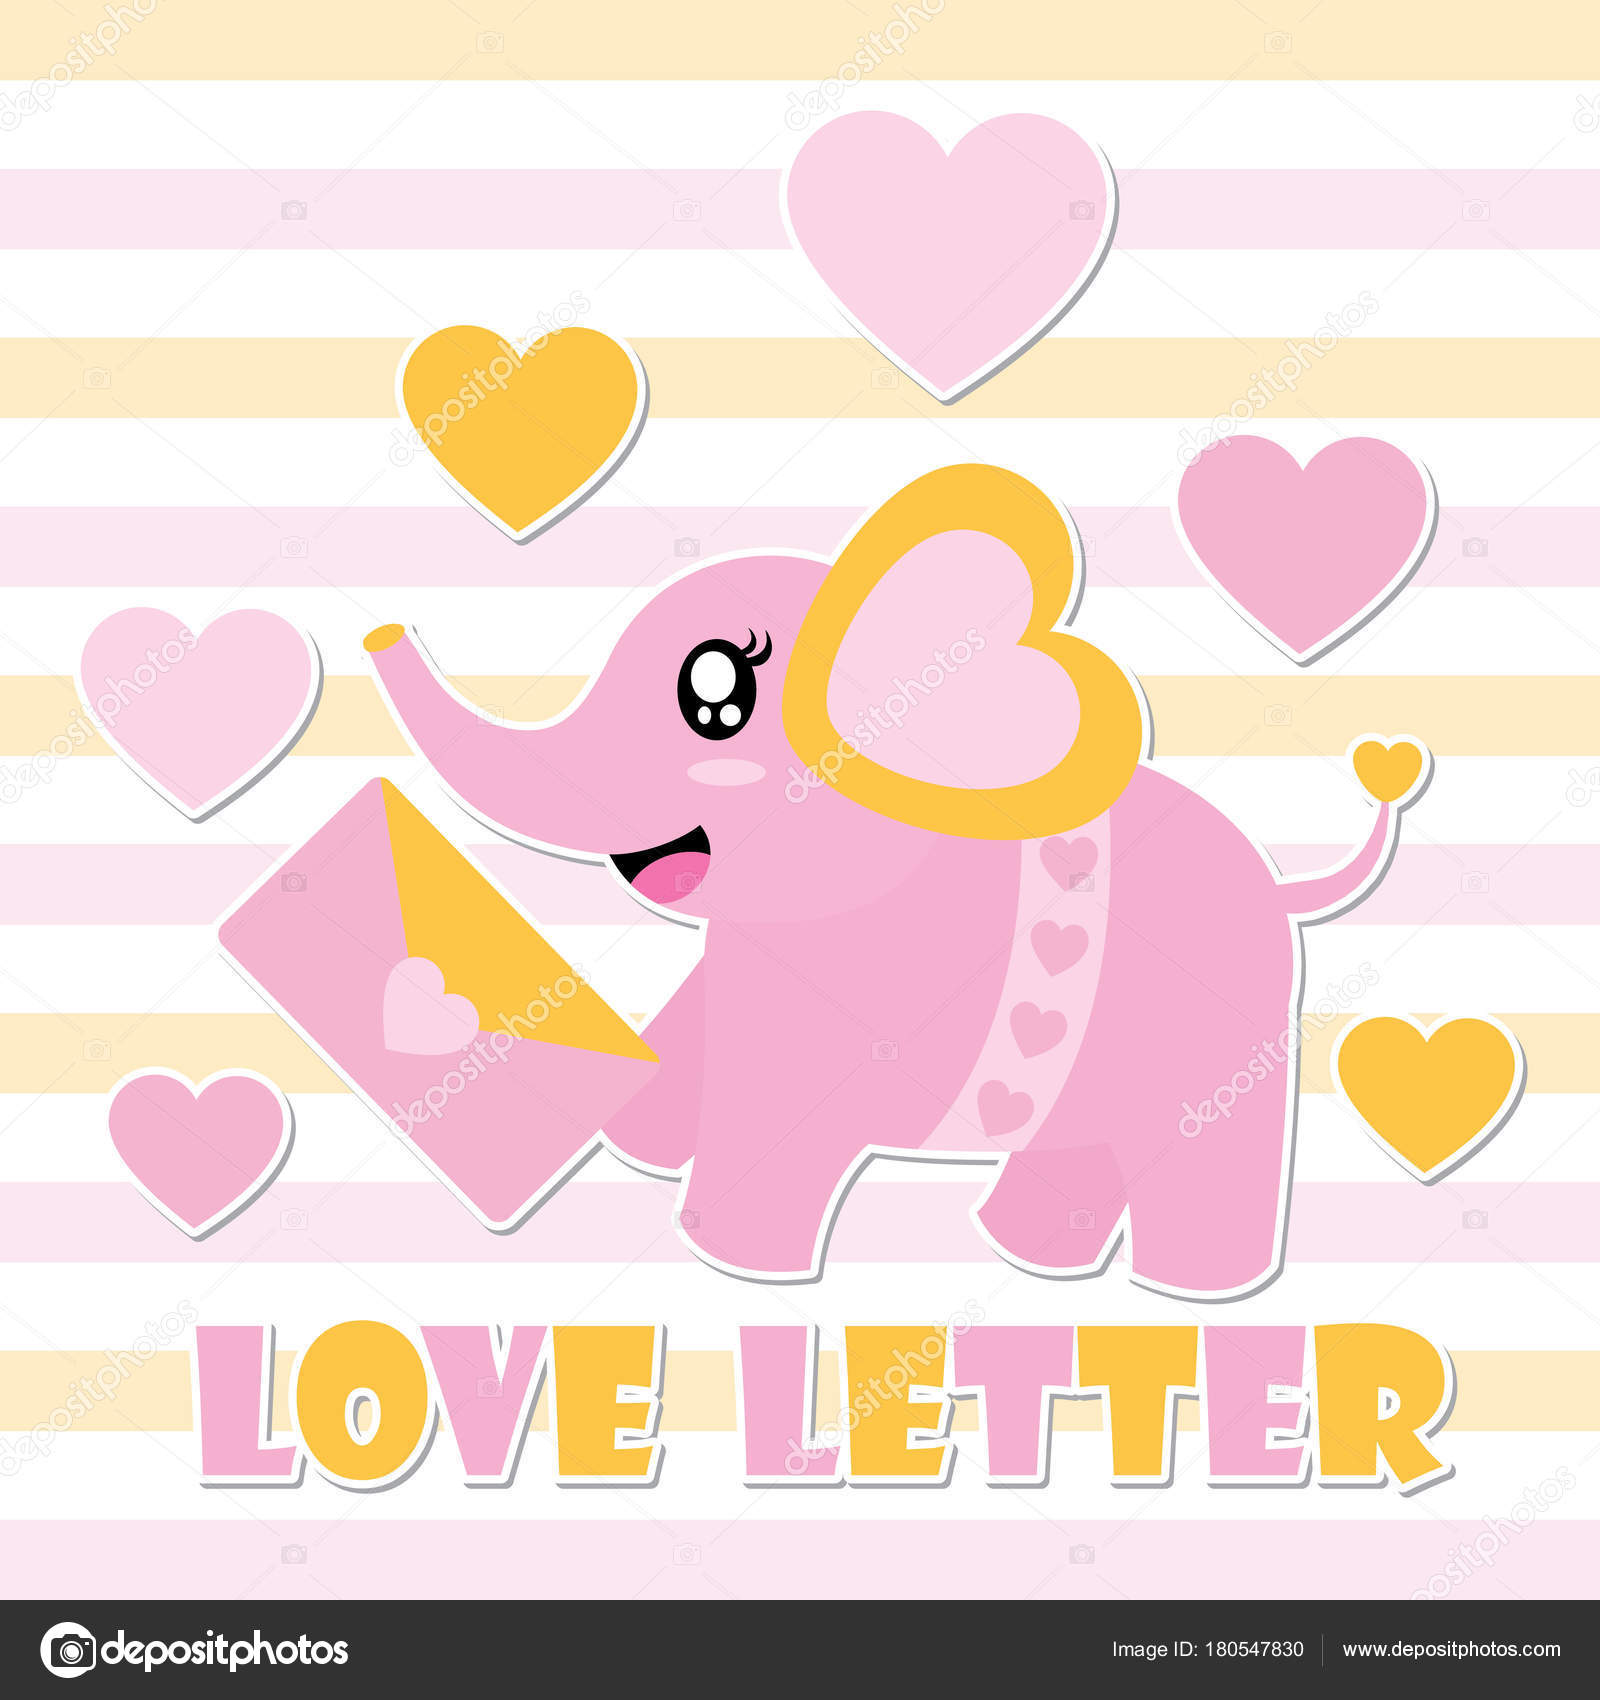 Most Inspiring Wallpaper Love Letter - depositphotos_180547830-stock-illustration-cute-baby-elephant-love-letter  Perfect Image Reference_583823.jpg